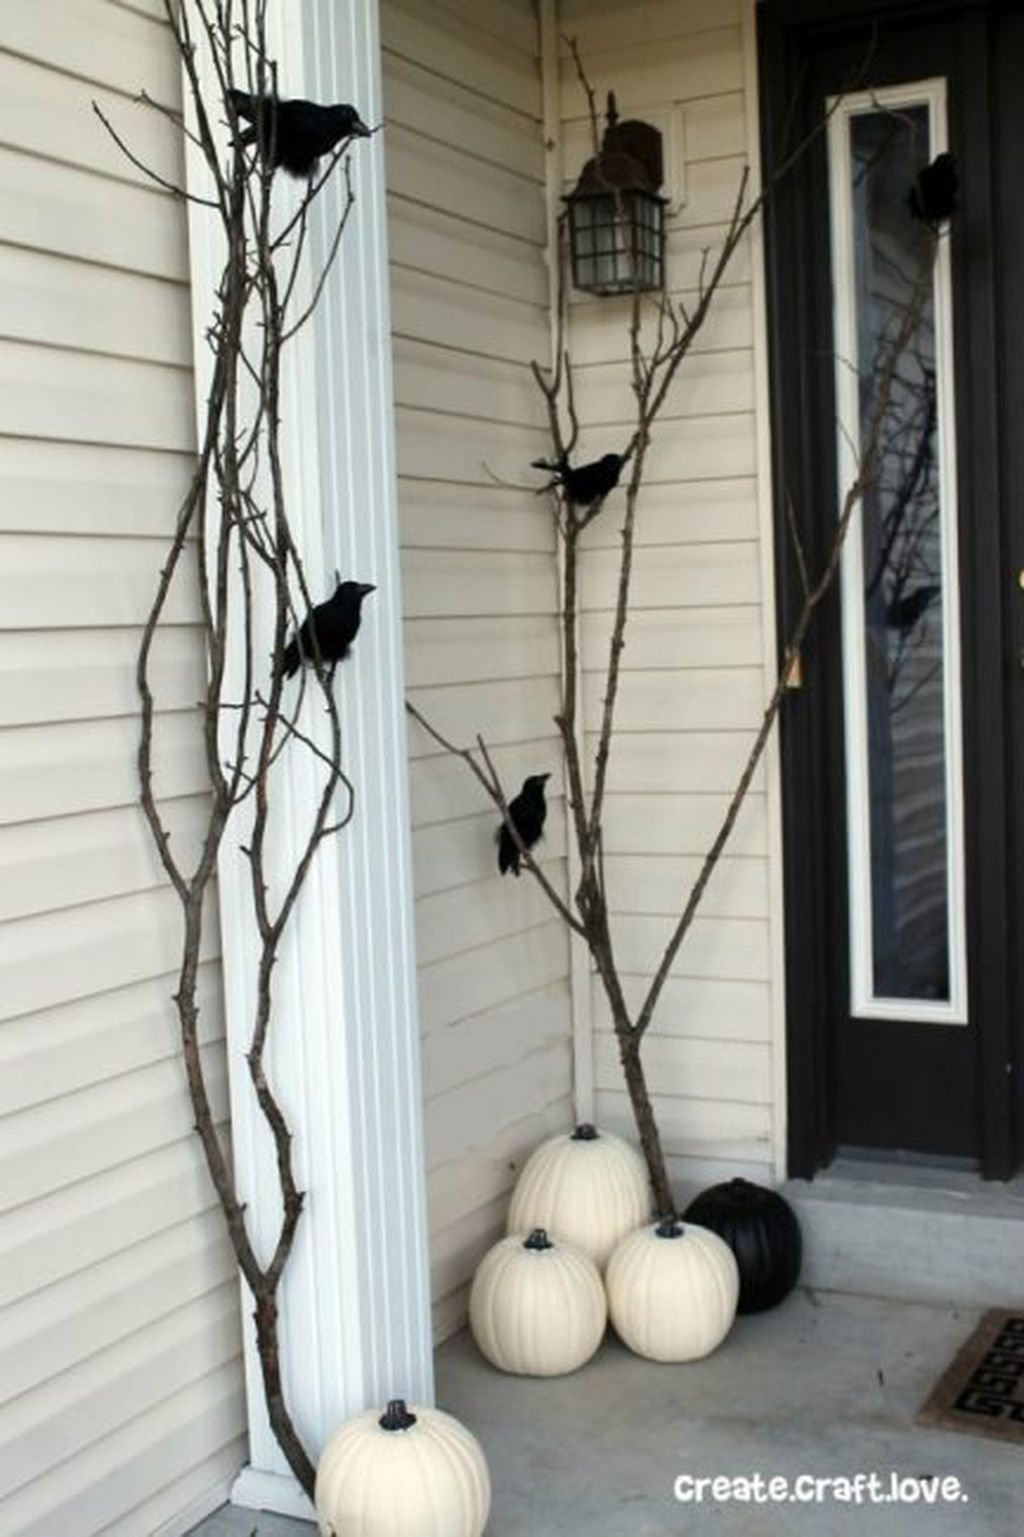 88 Scary Fall Yard Decoration Ideas You Should Try Yard - Scary Halloween Yard Decorating Ideas